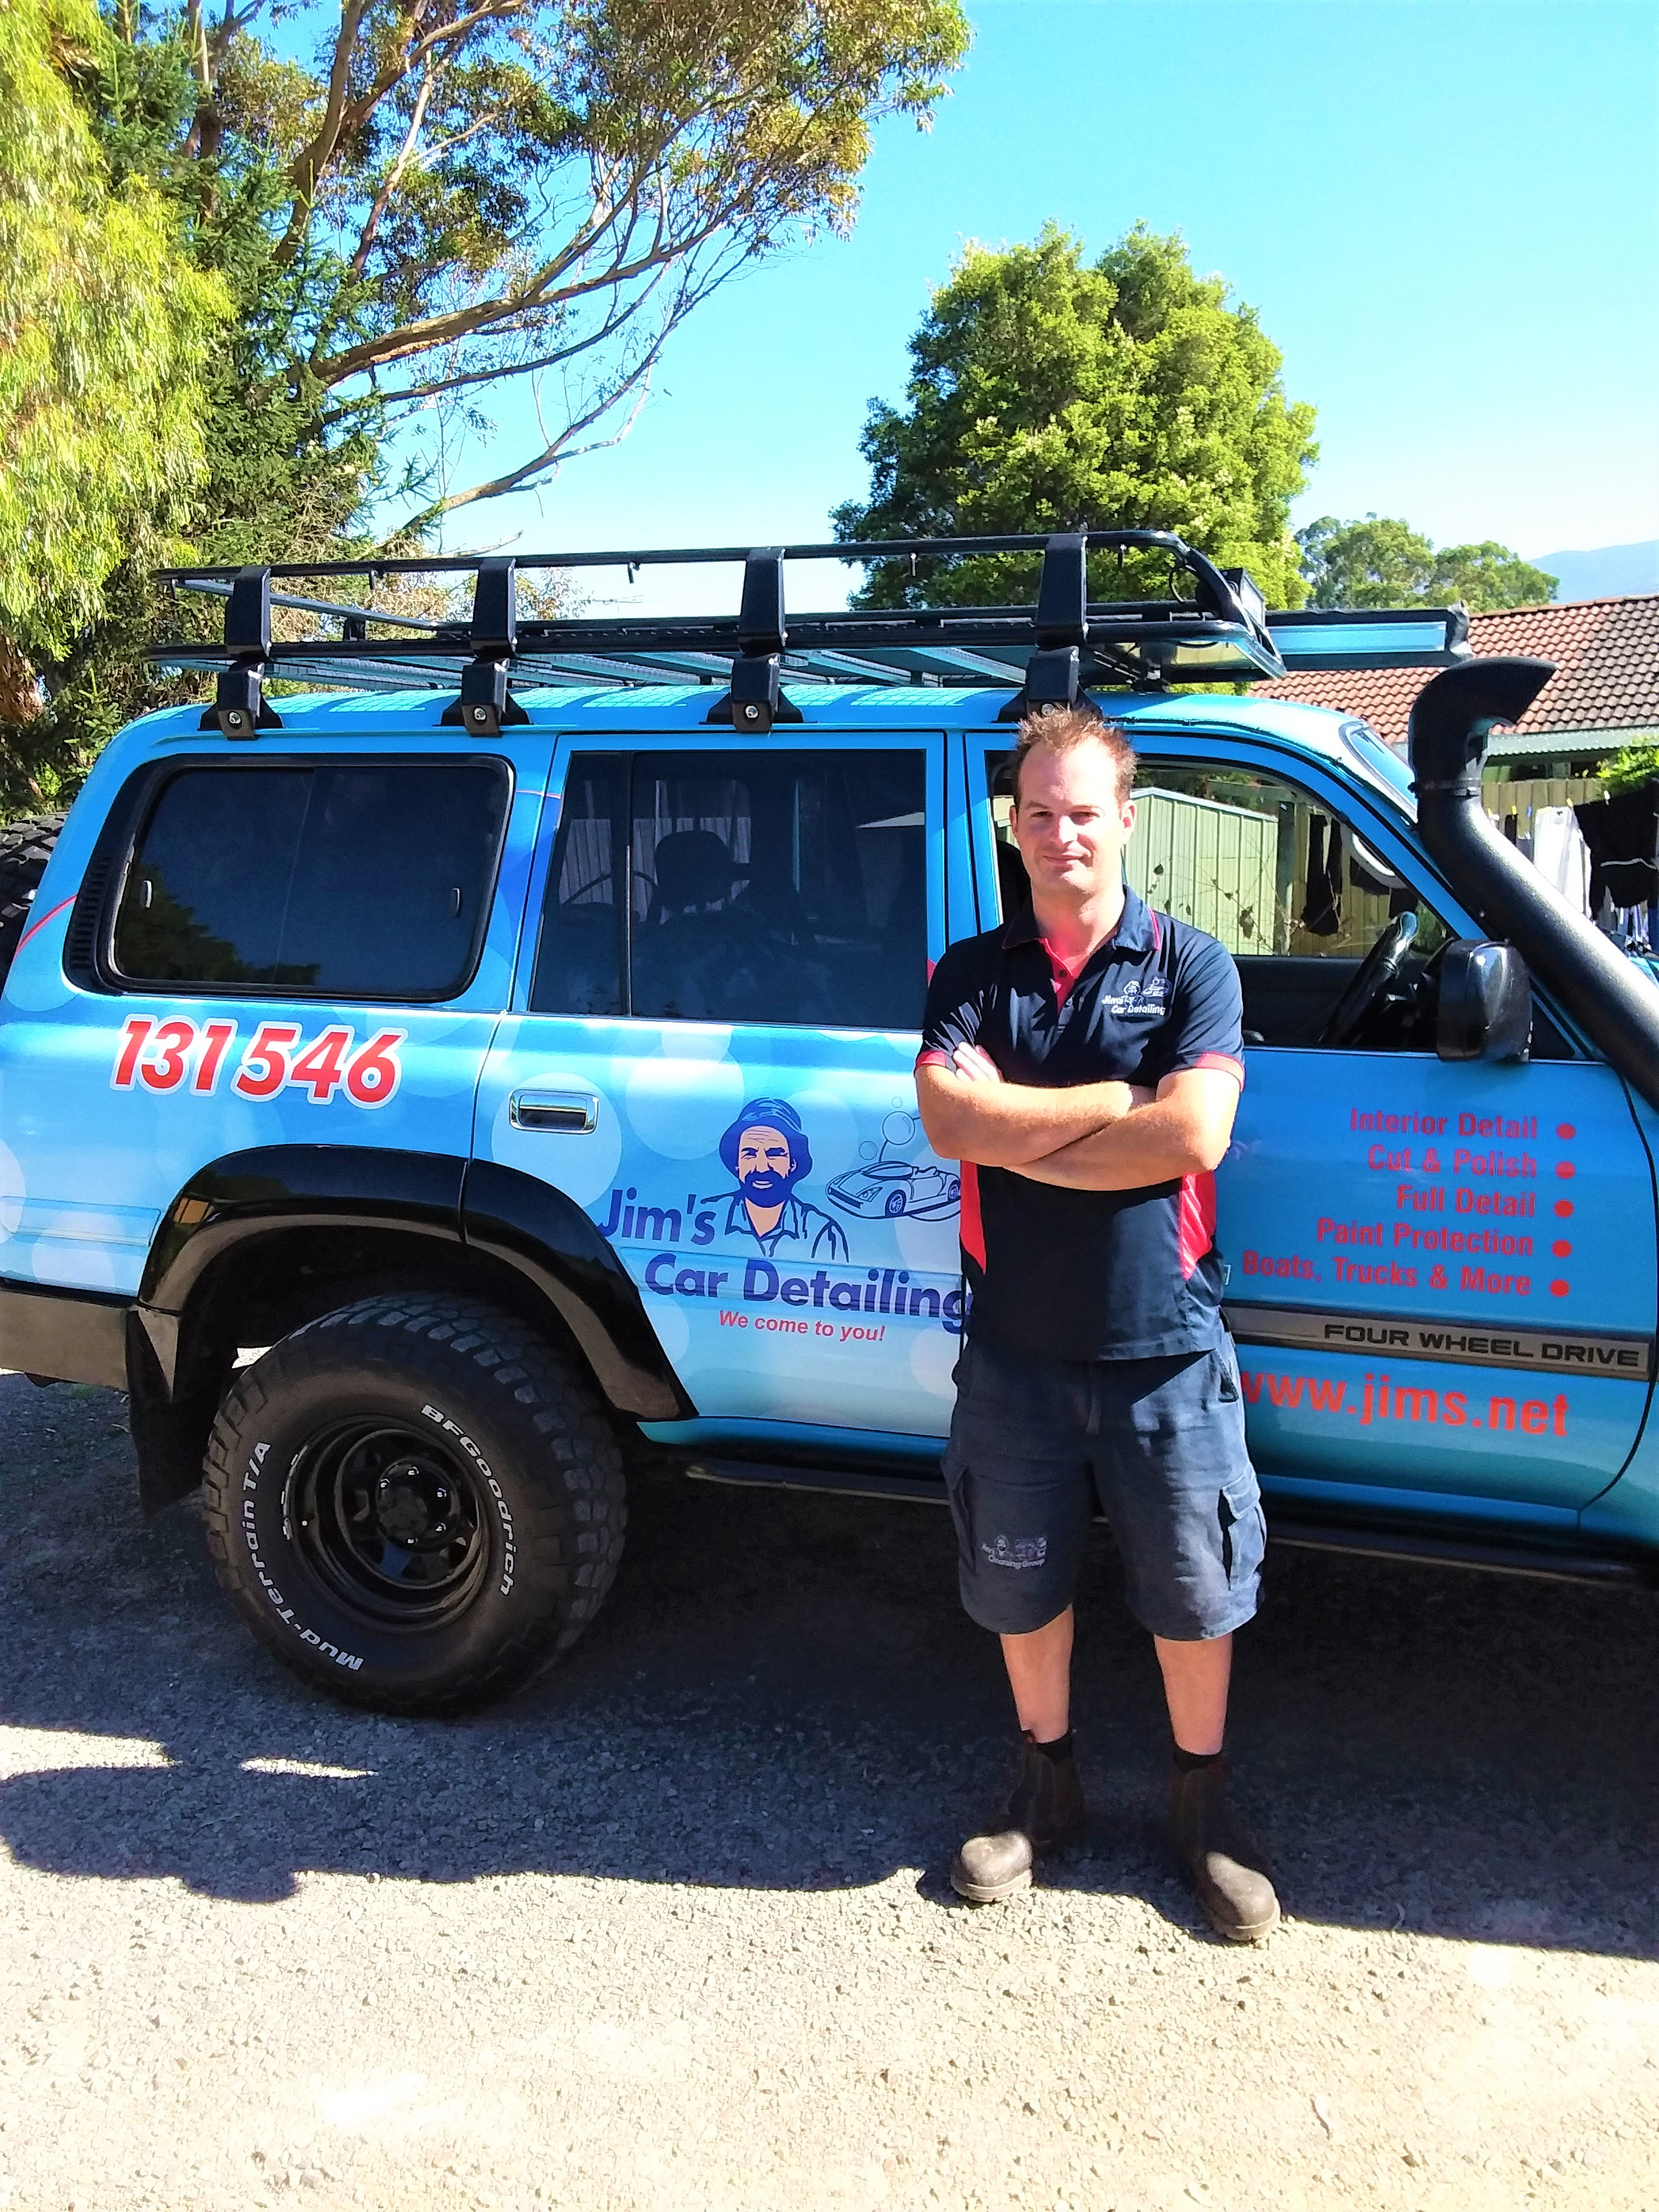 jims-car-detailing-burleigh-existing-business-with-regular-clients-9